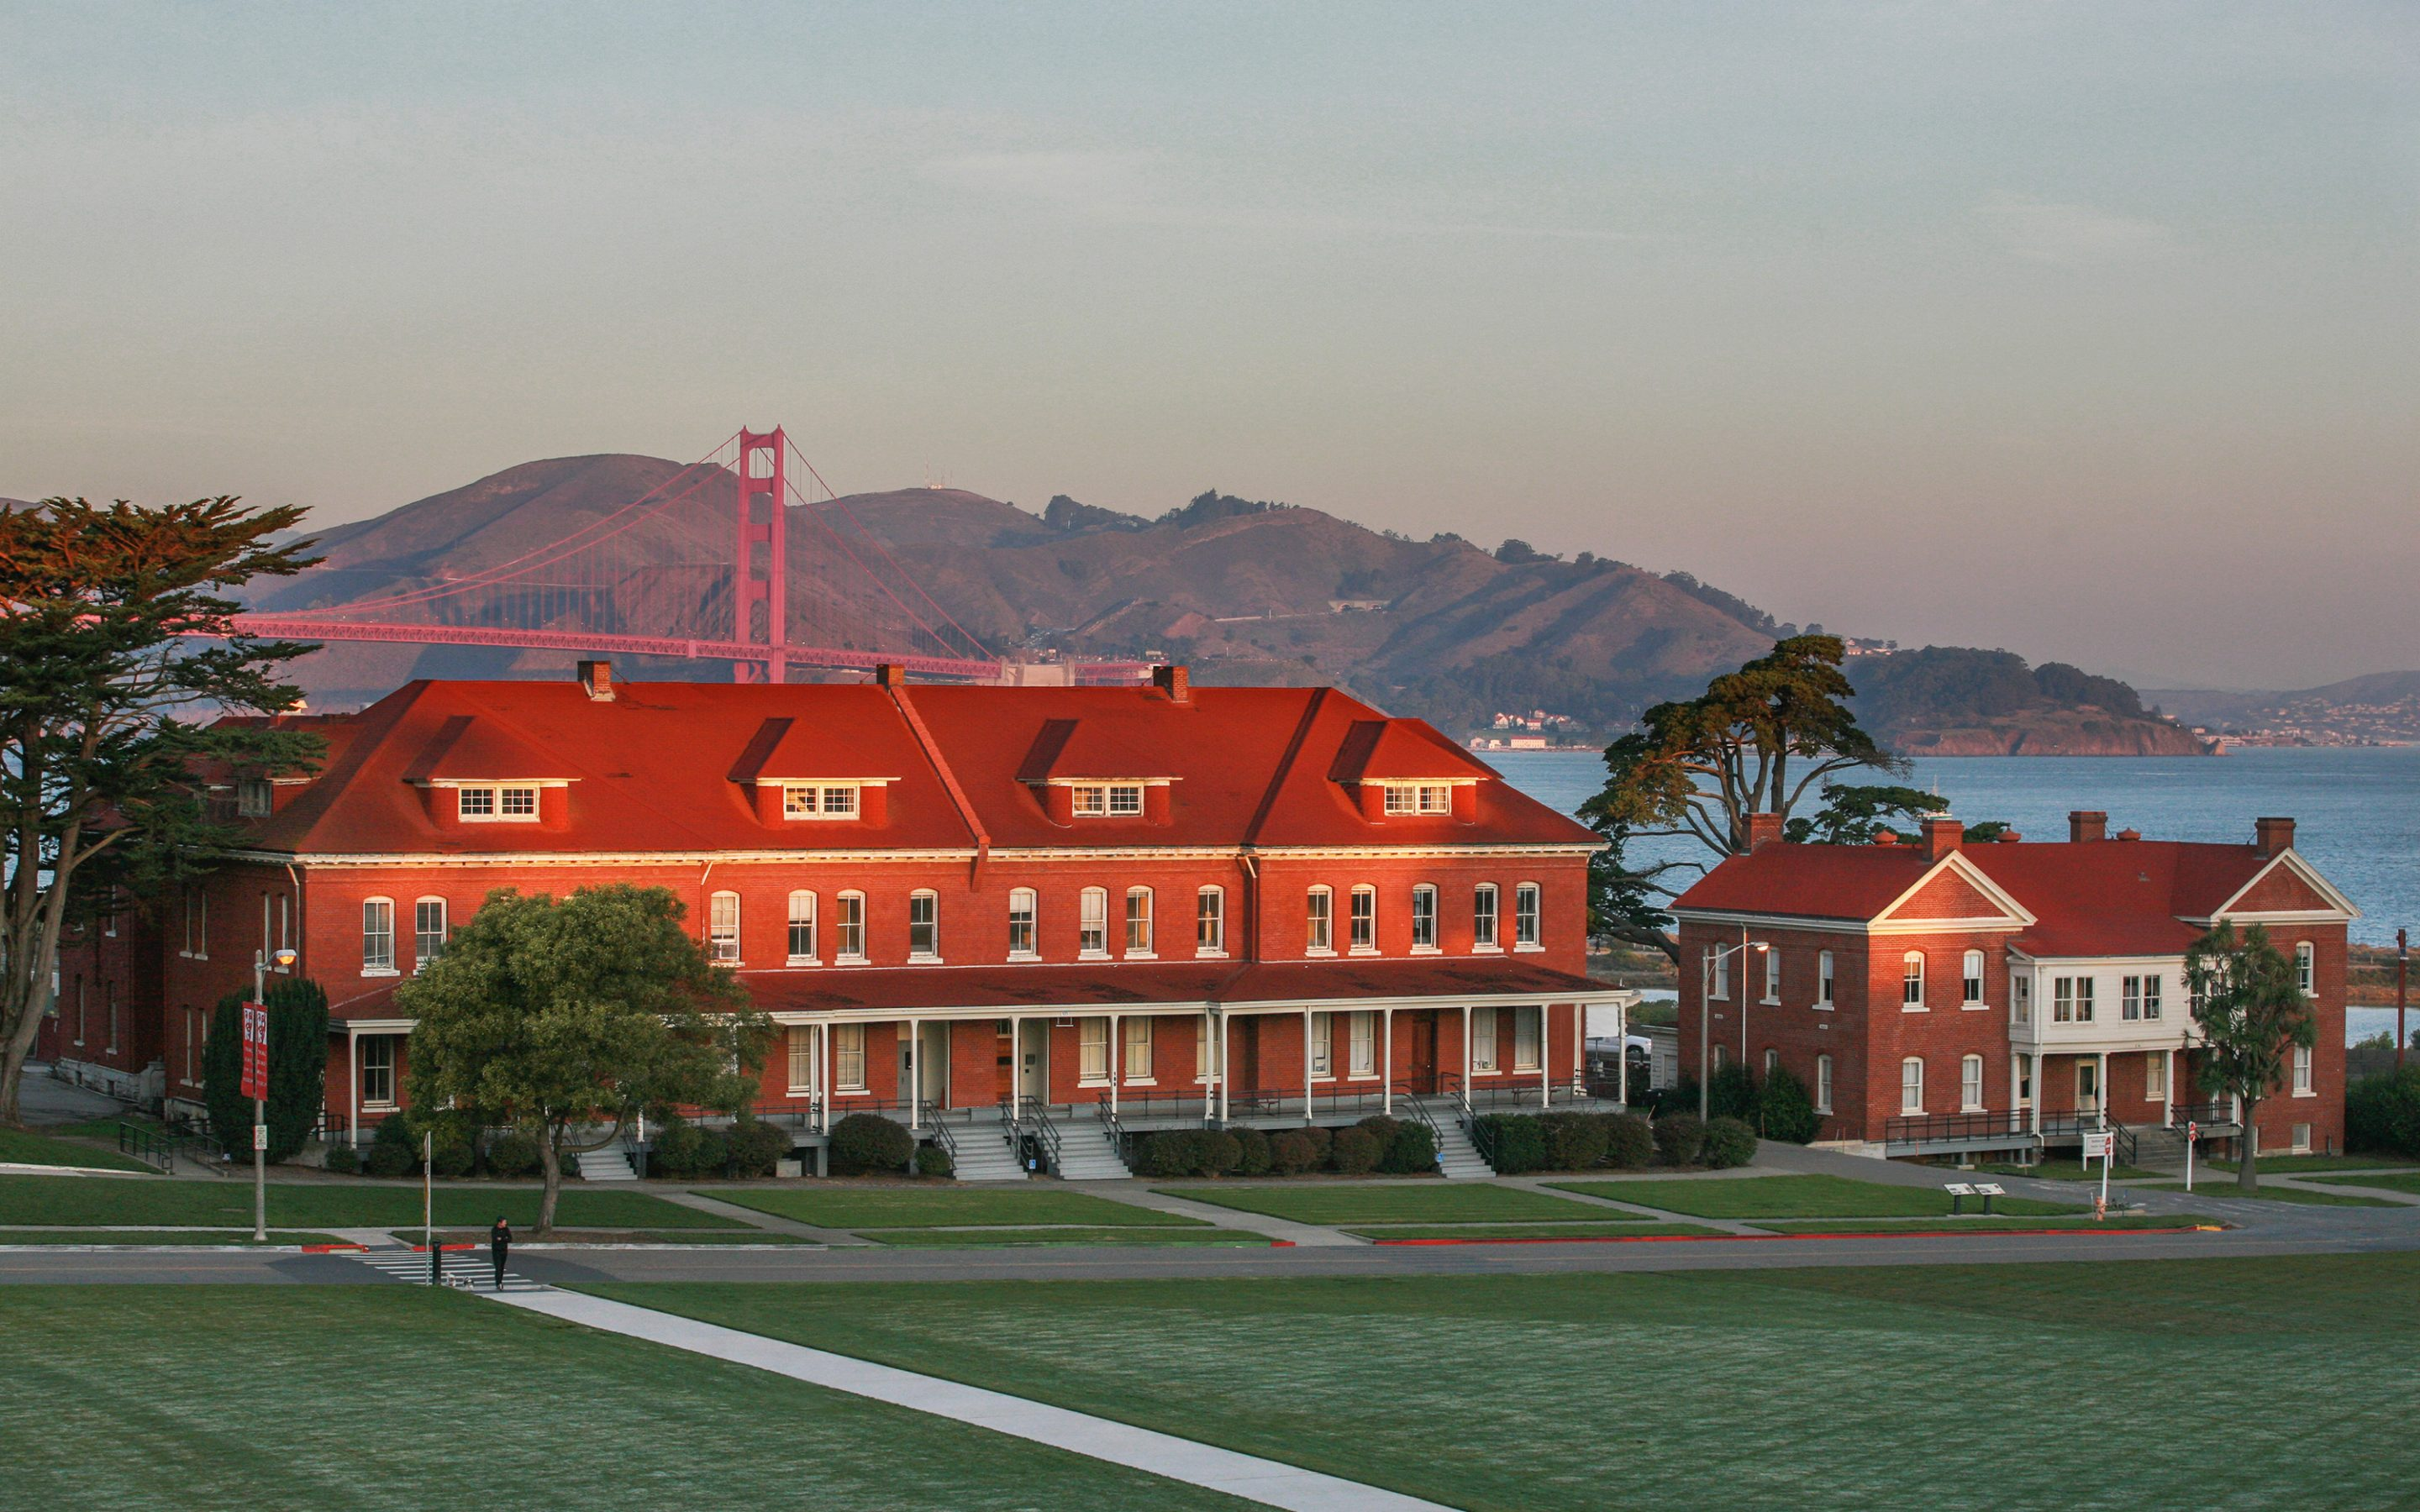 New Lodge at the Presidio Now Taking Reservations in Anticipation of Summer Opening